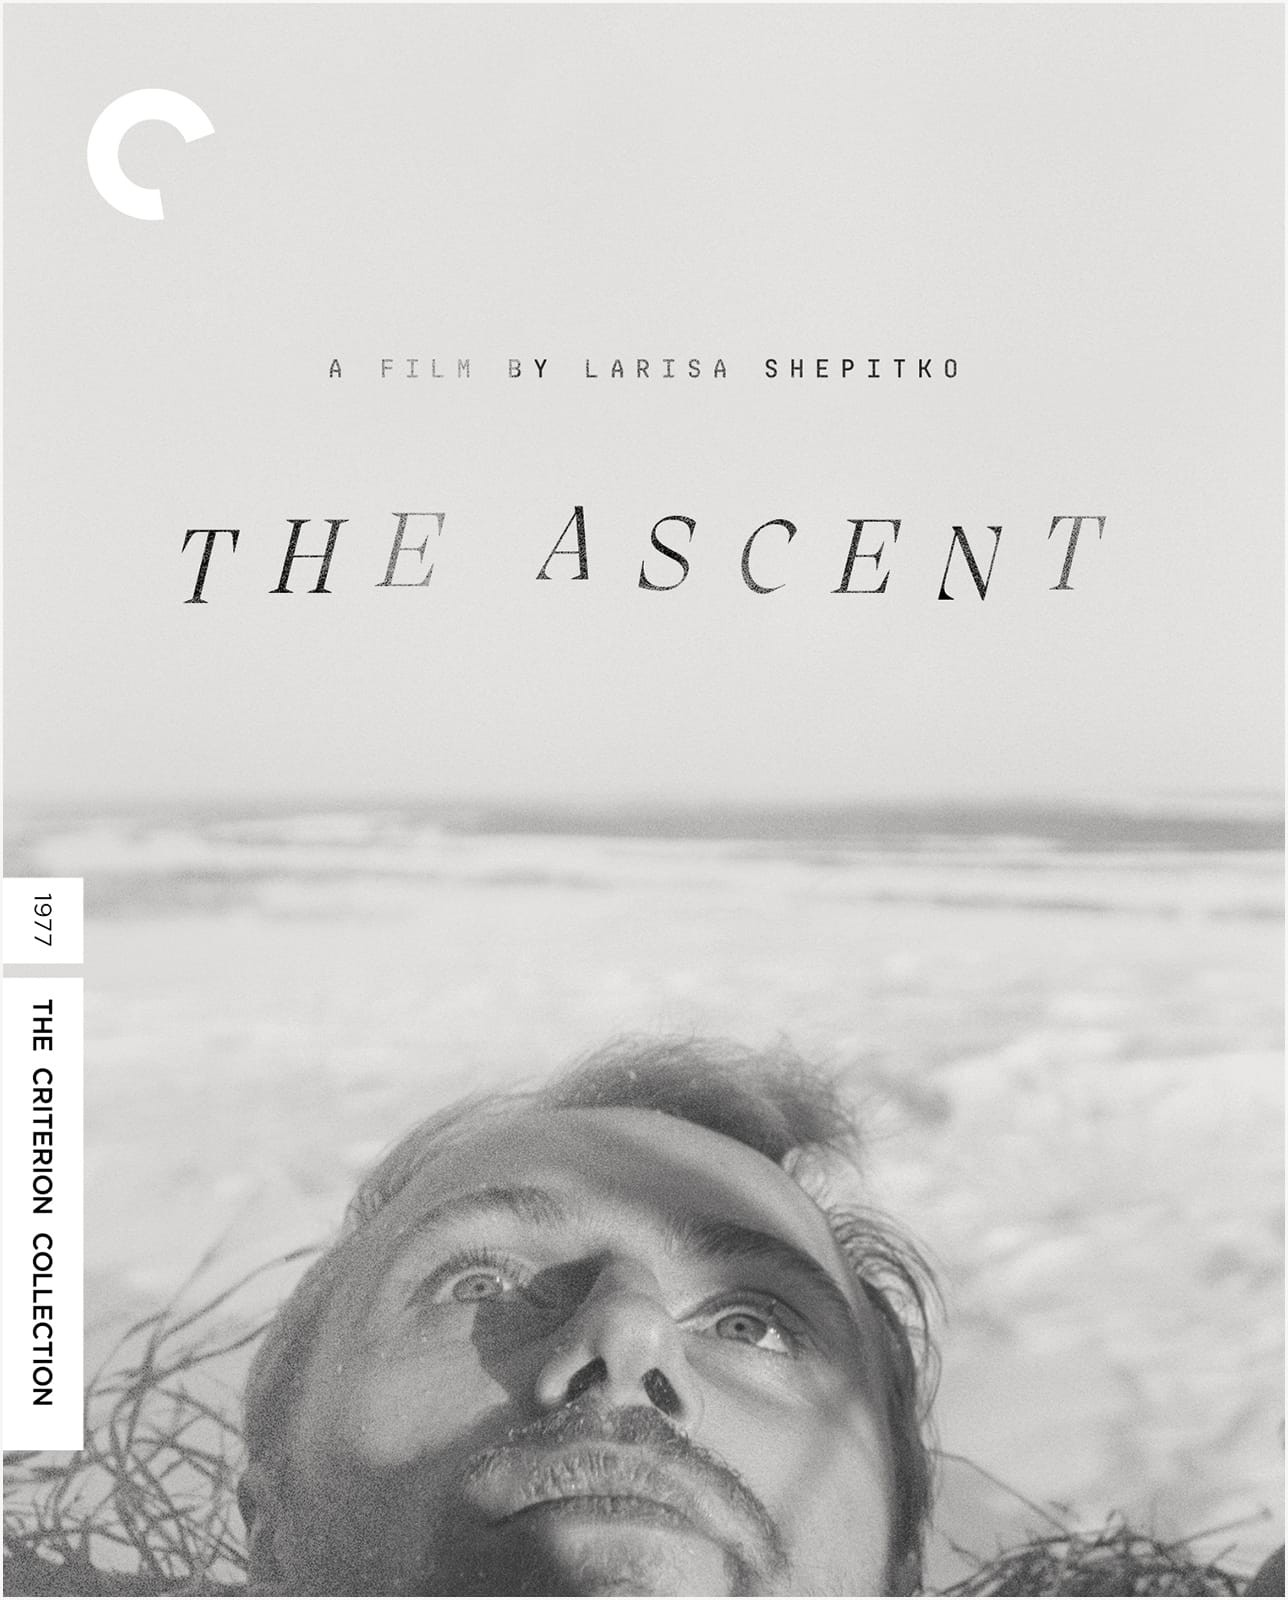 The Ascent (1977) | The Criterion Collection